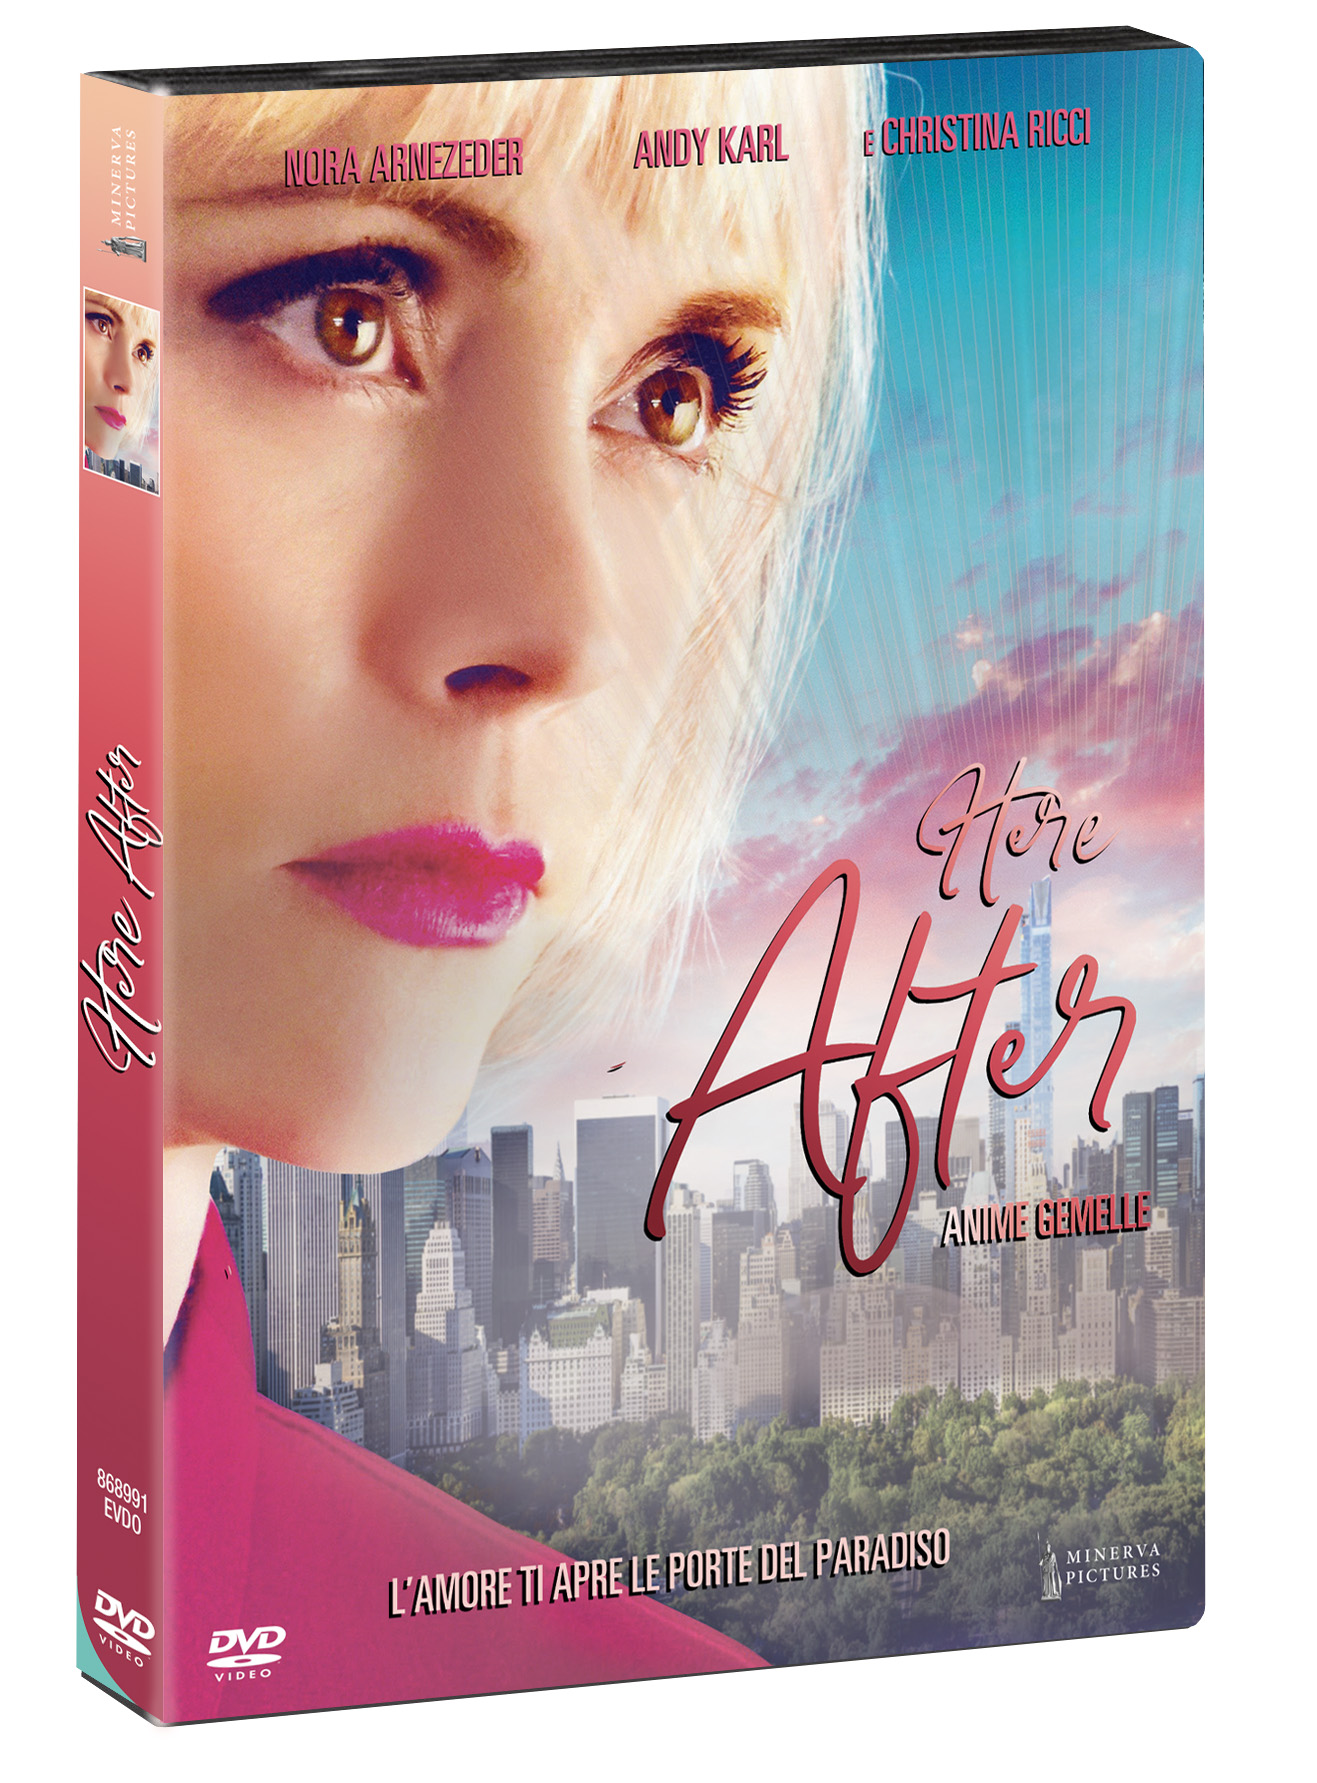 HERE AFTER - ANIME GEMELLE (DVD)